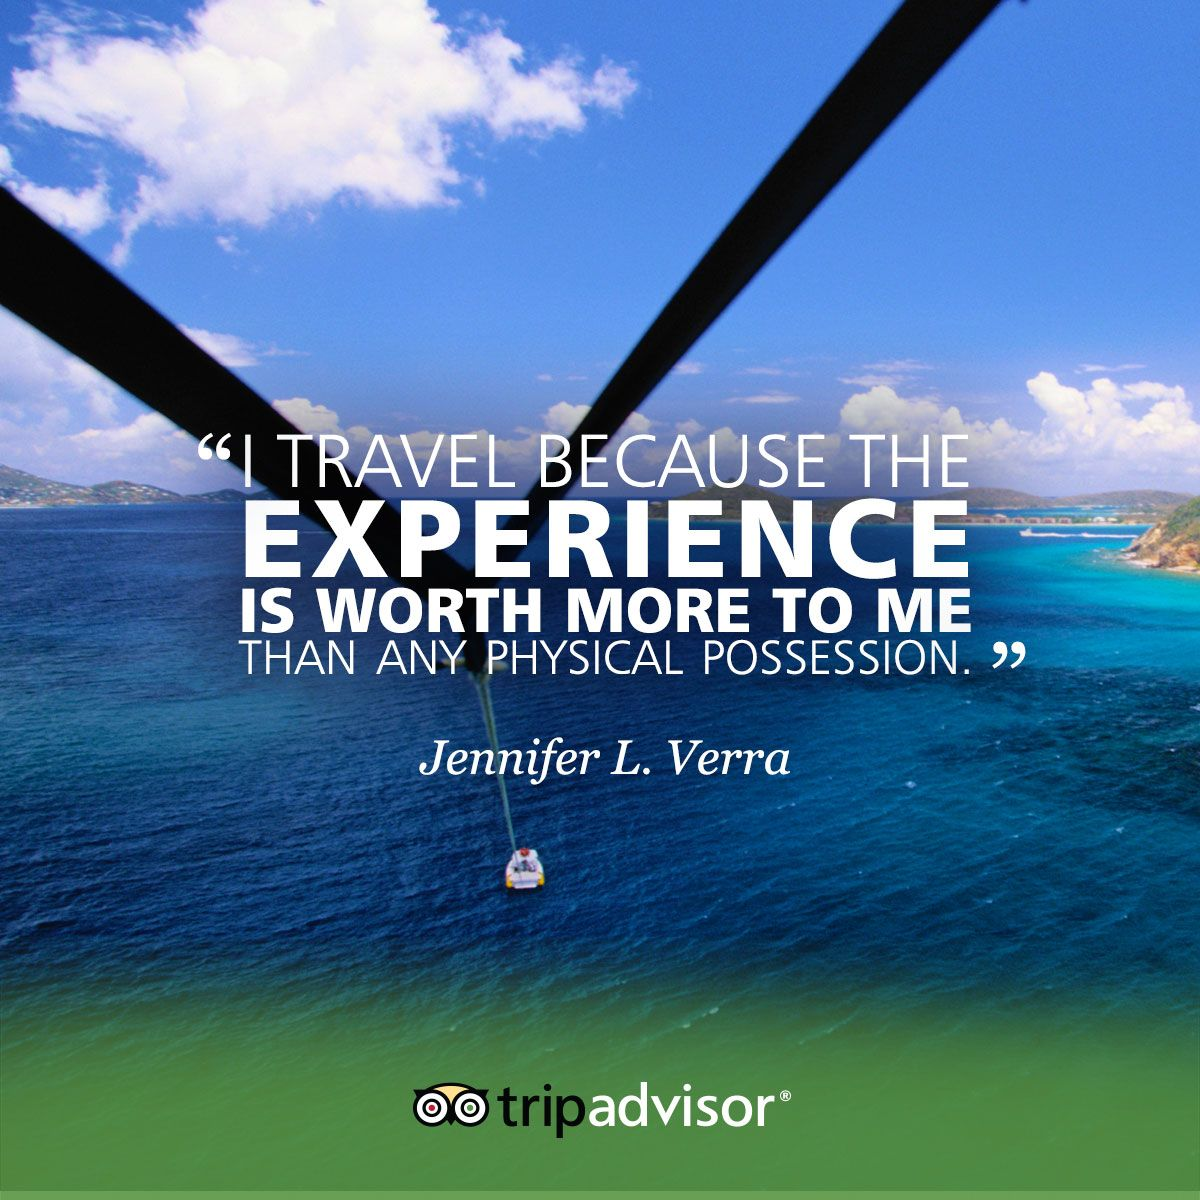 """""""I travel because the experience is worth more to me than any physical possession."""" -Jennifer L. Verra #whywetravel"""